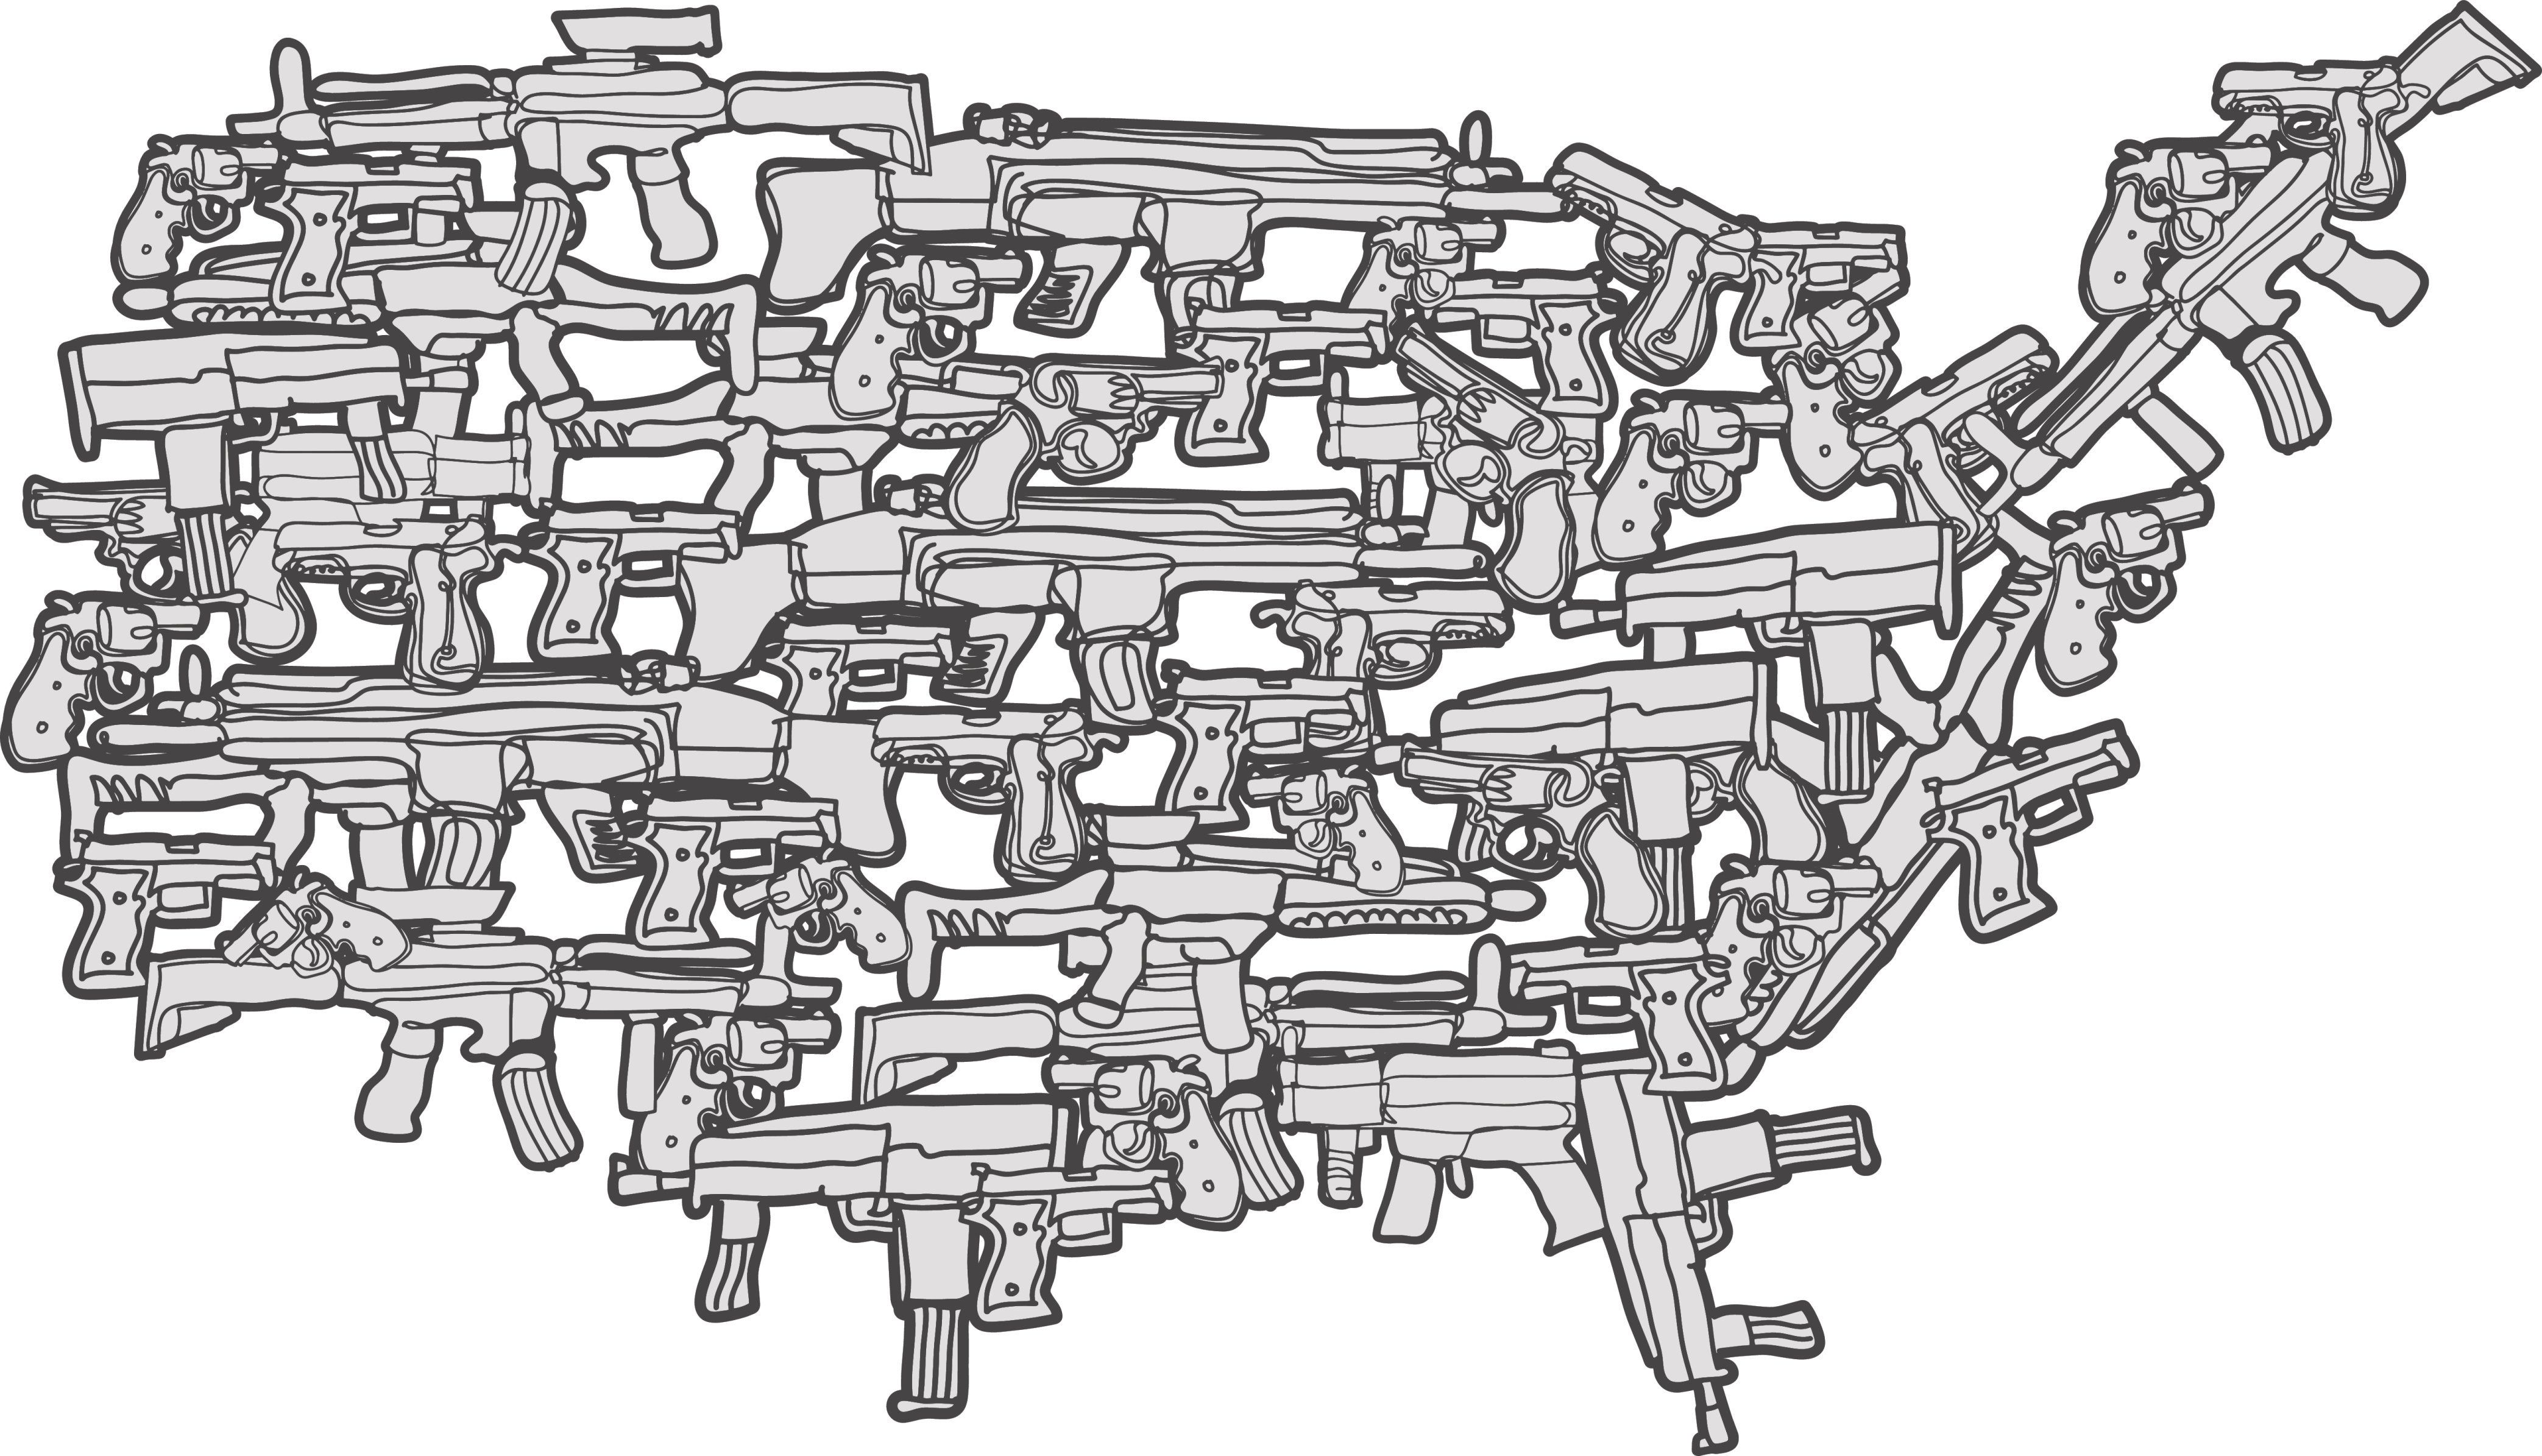 Violence in a America is a hot topic. 'Guns and America' is an art work that does not indorse violence in anyway, but instead speaks to the discussion of guns and violence in american culture.